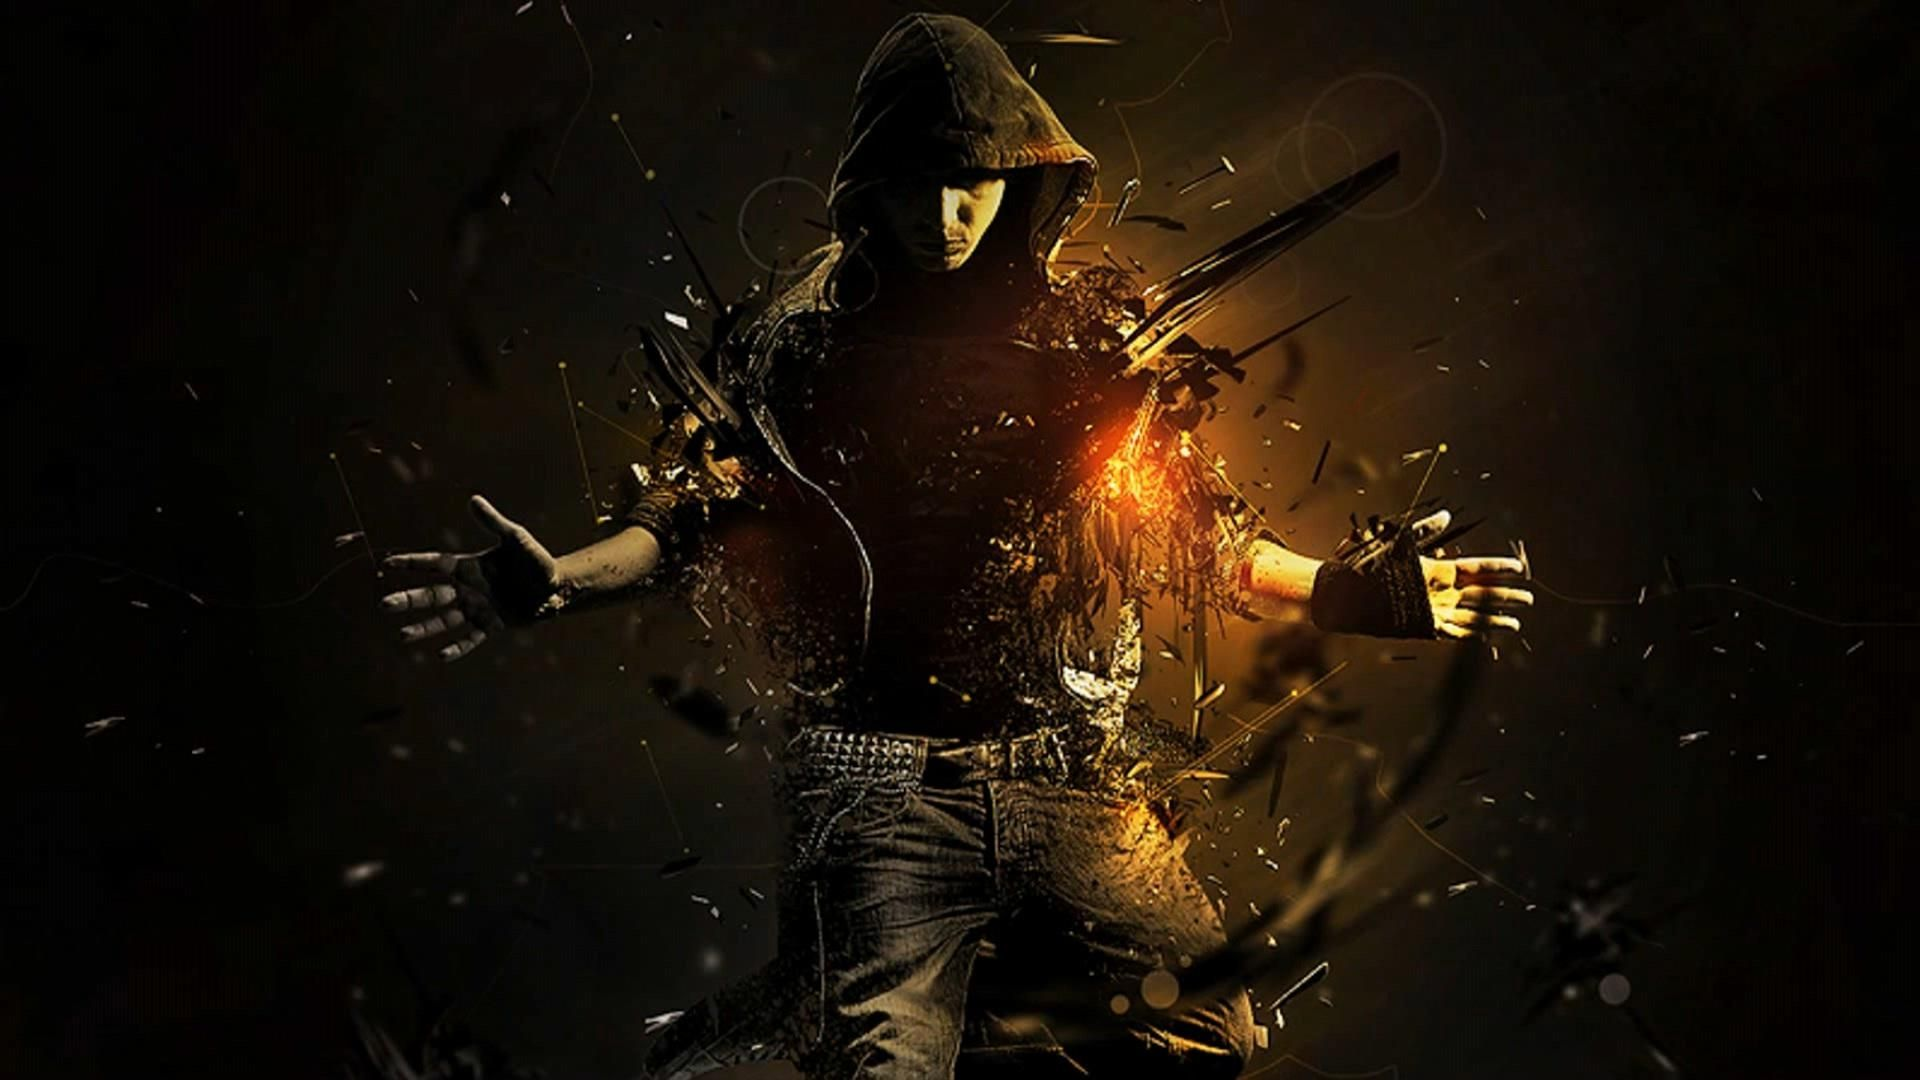 Very Cool Wallpapers Download